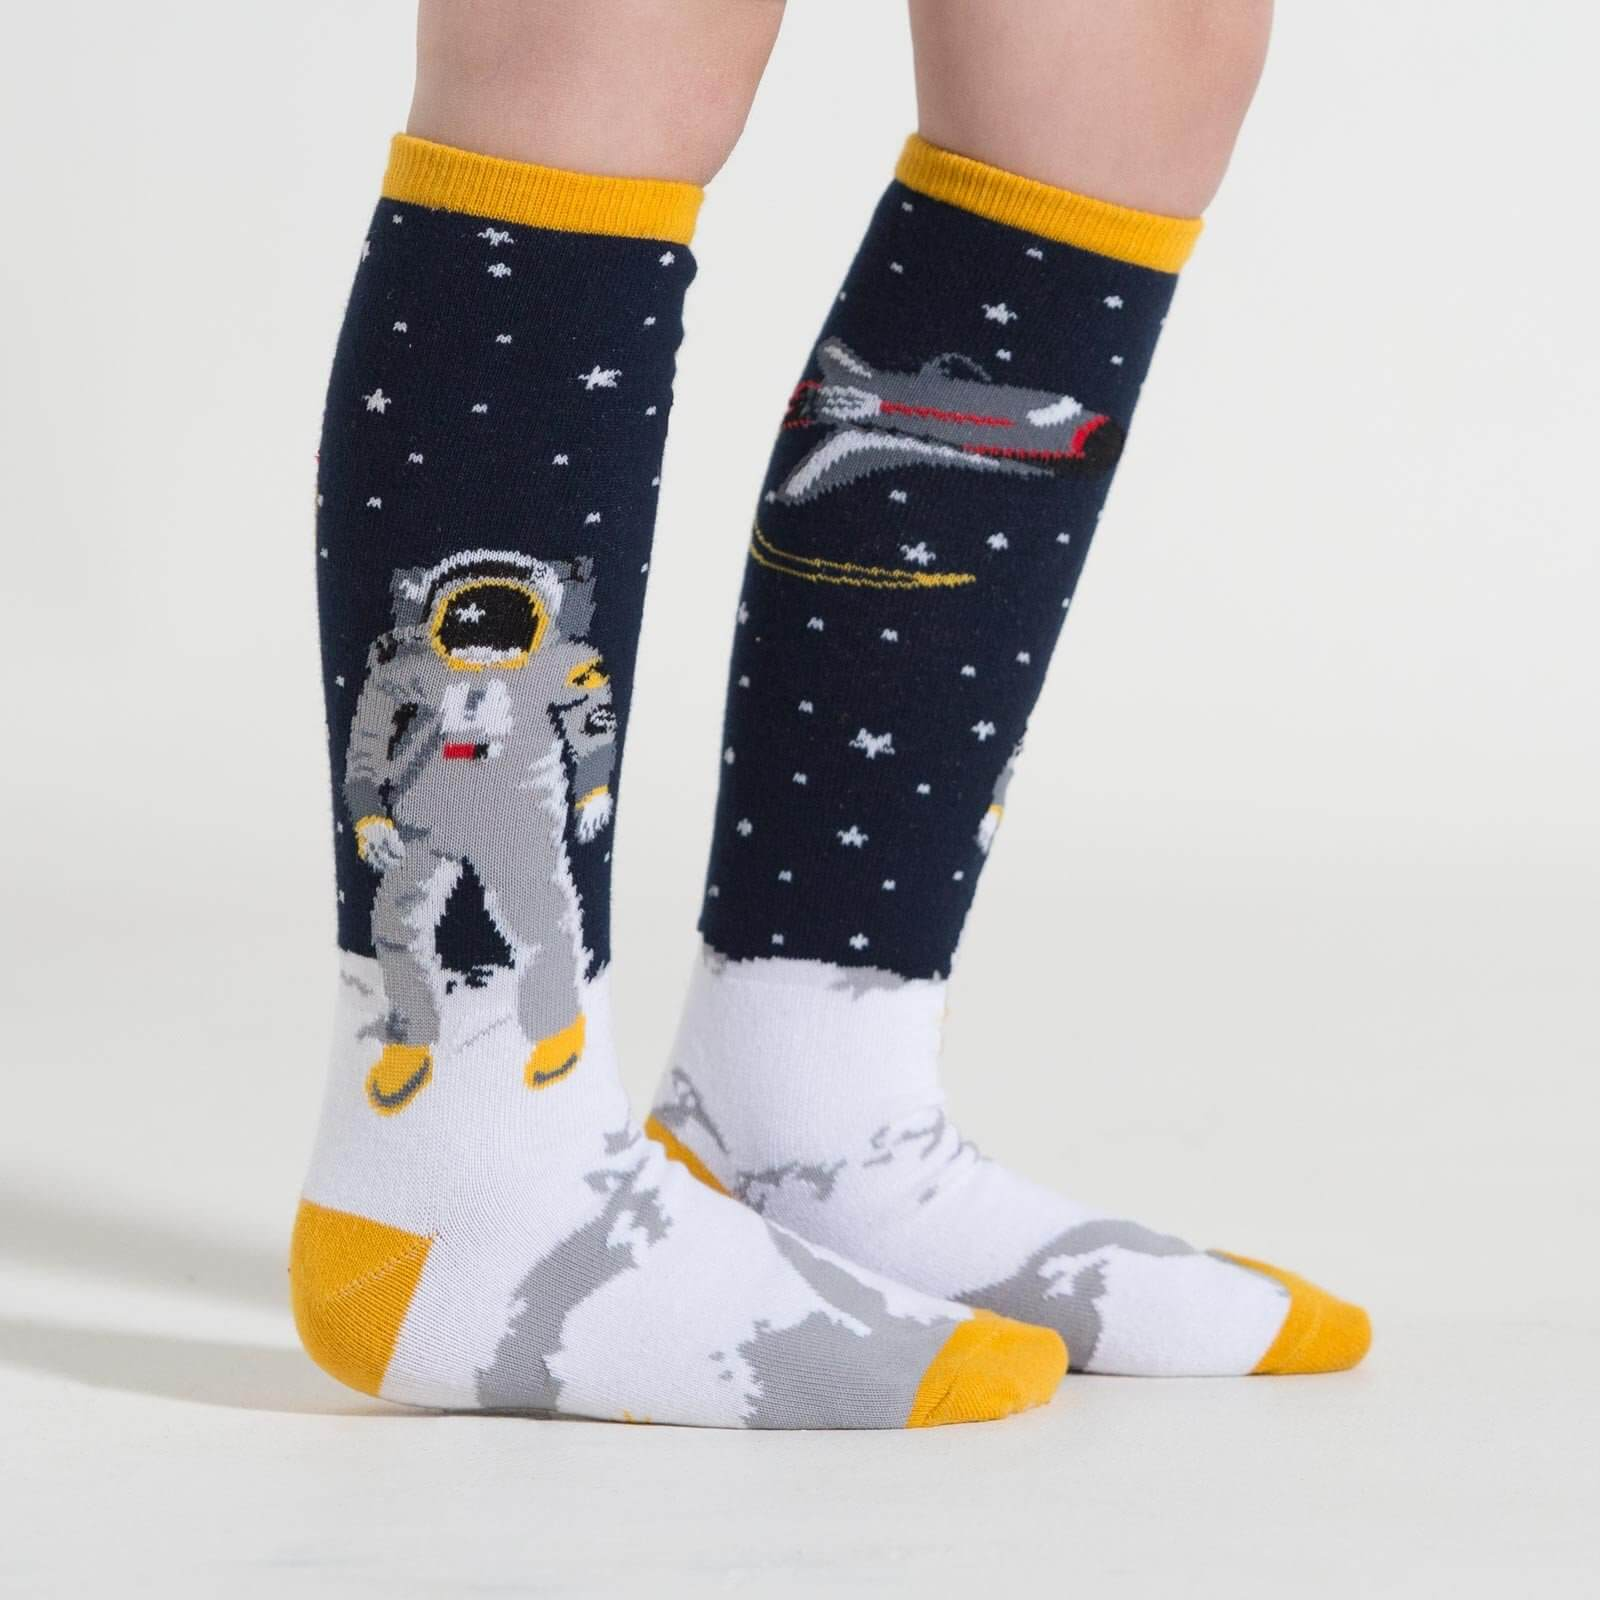 john lee cronin john crazy socks 3 (1)